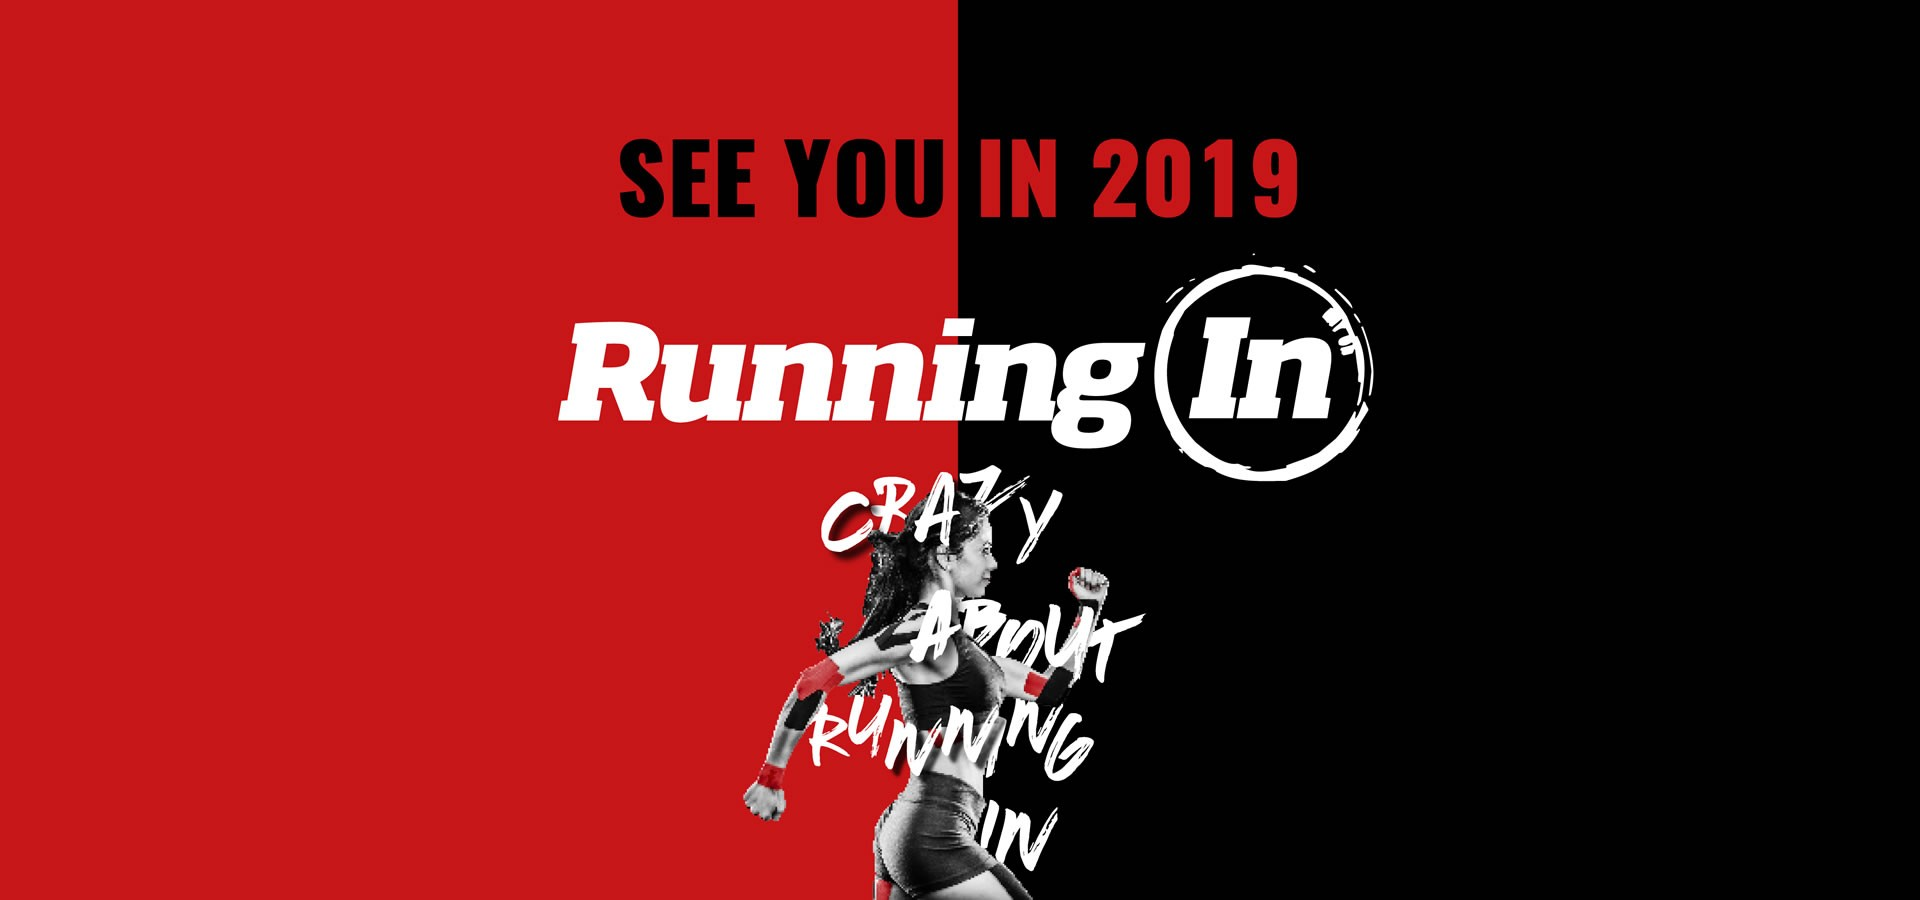 running-in-see-you-2019